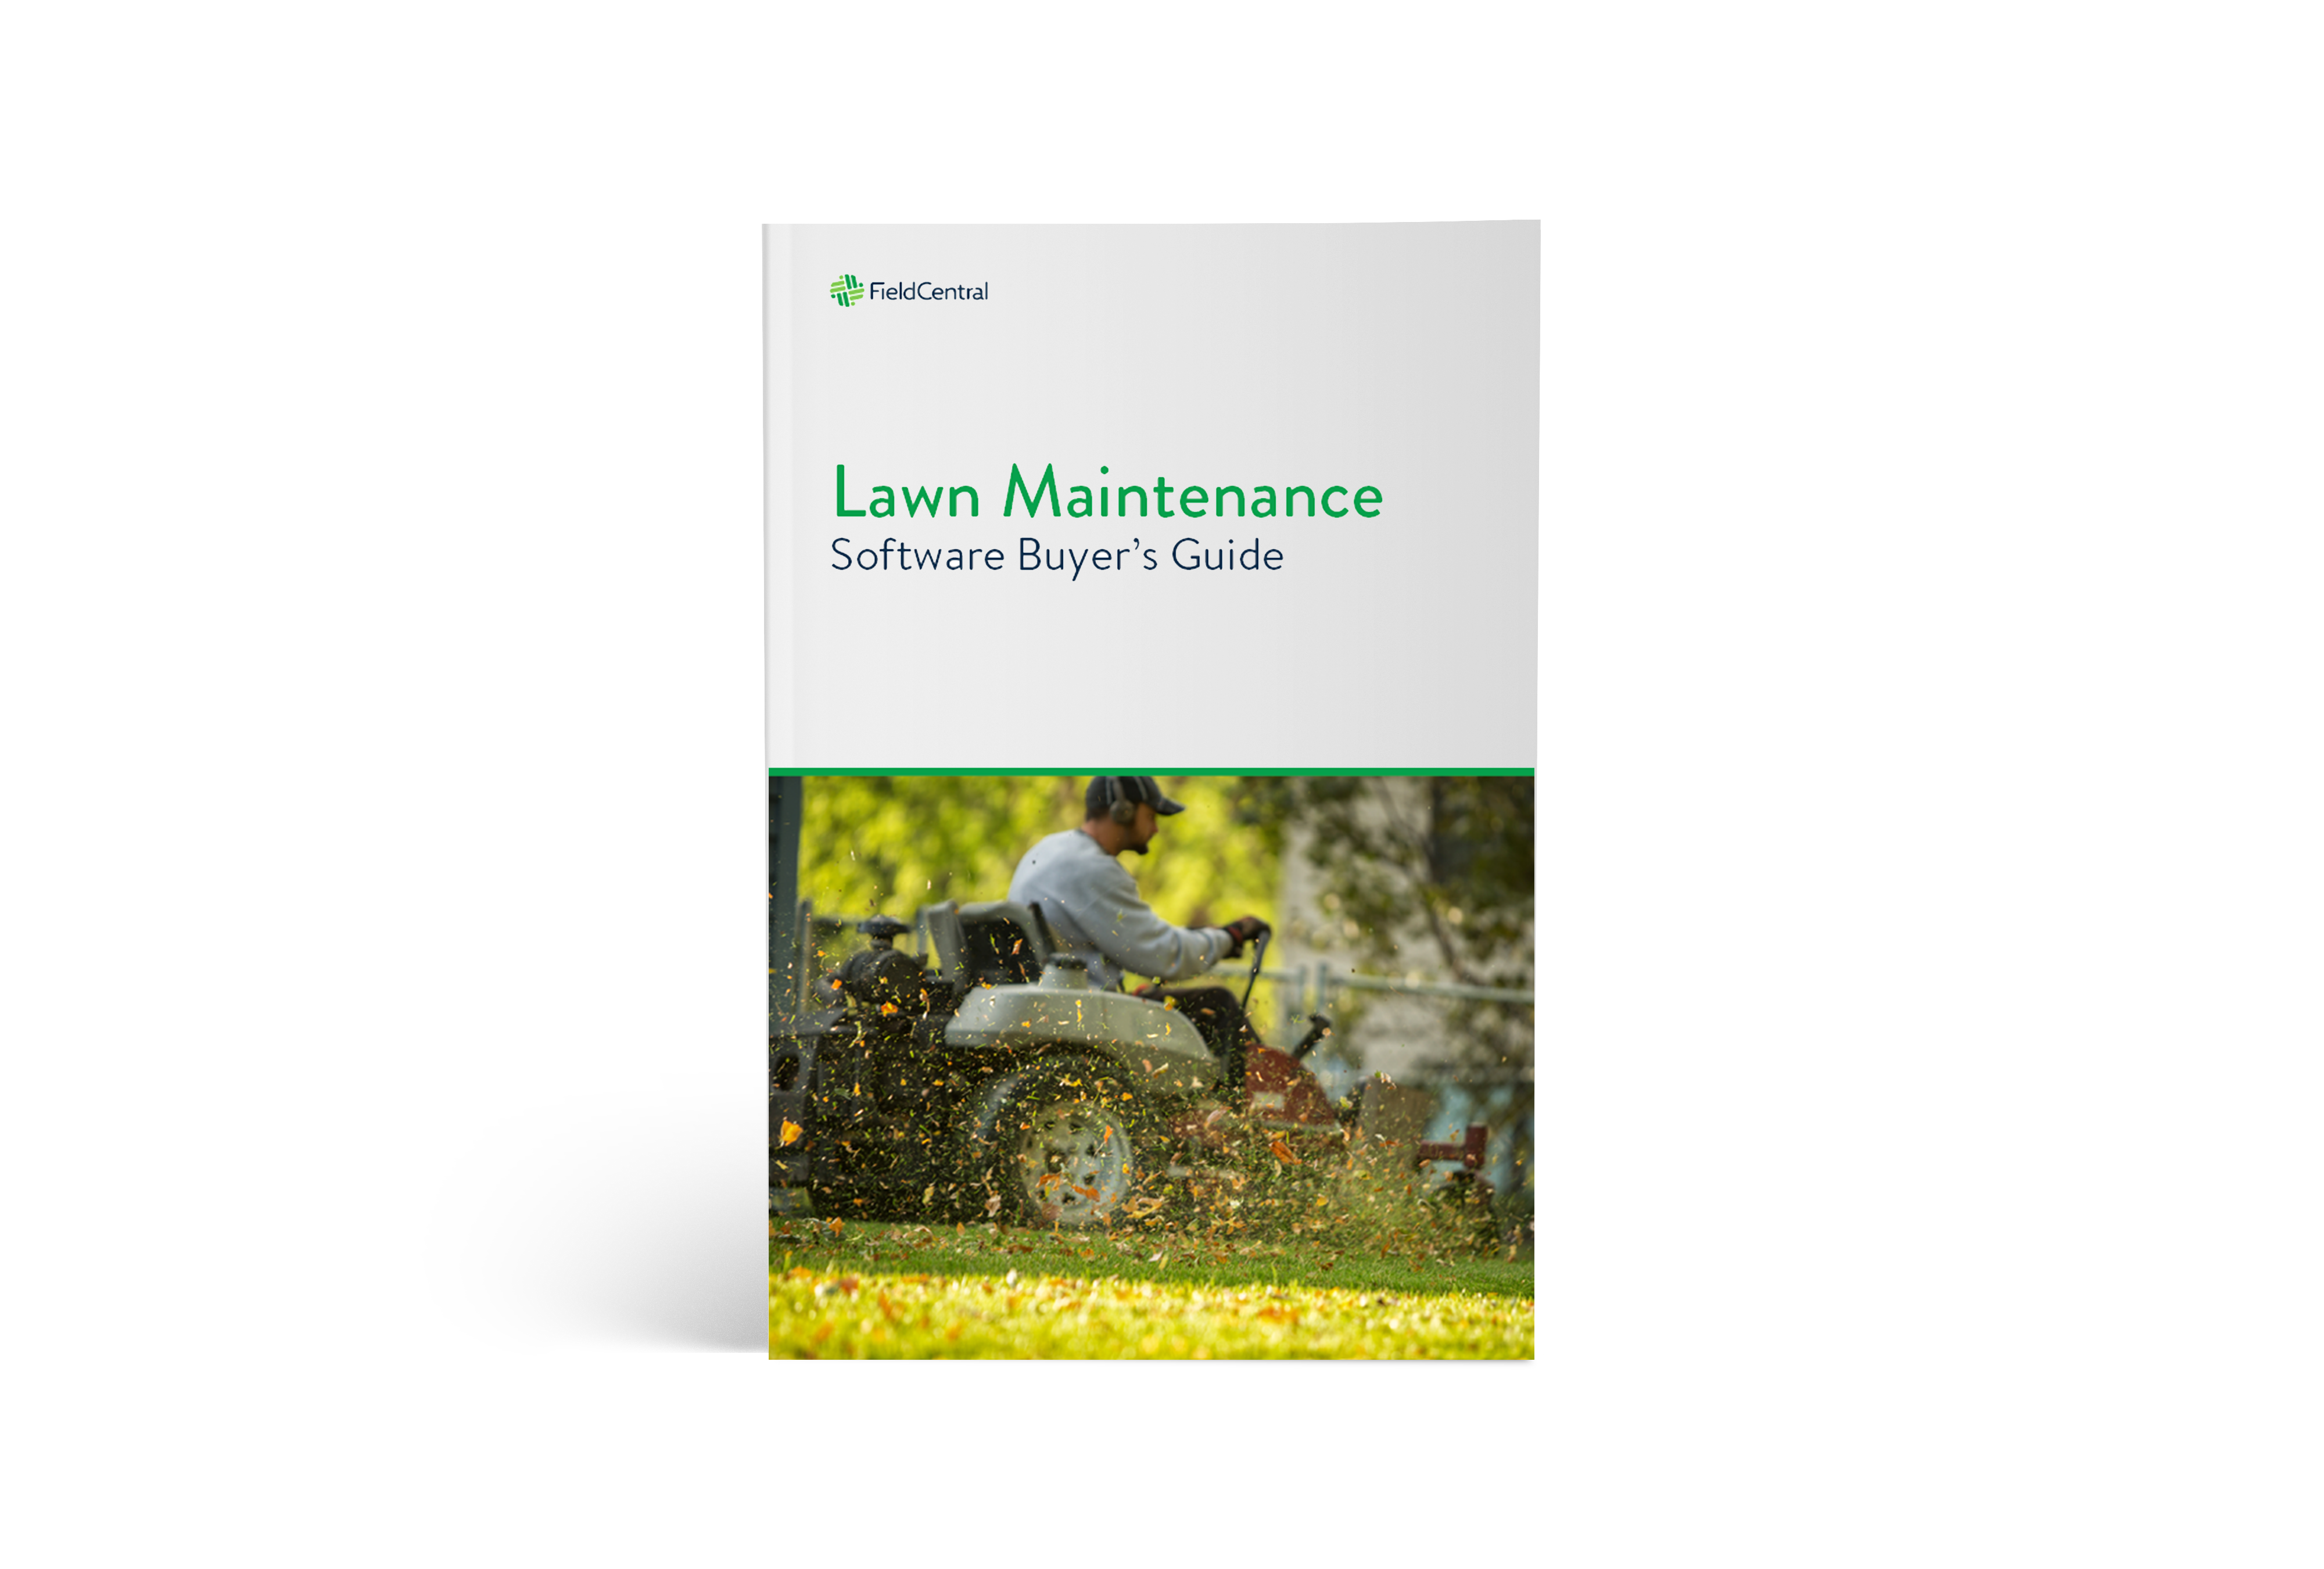 Lawn Maintenance Buyers Guide